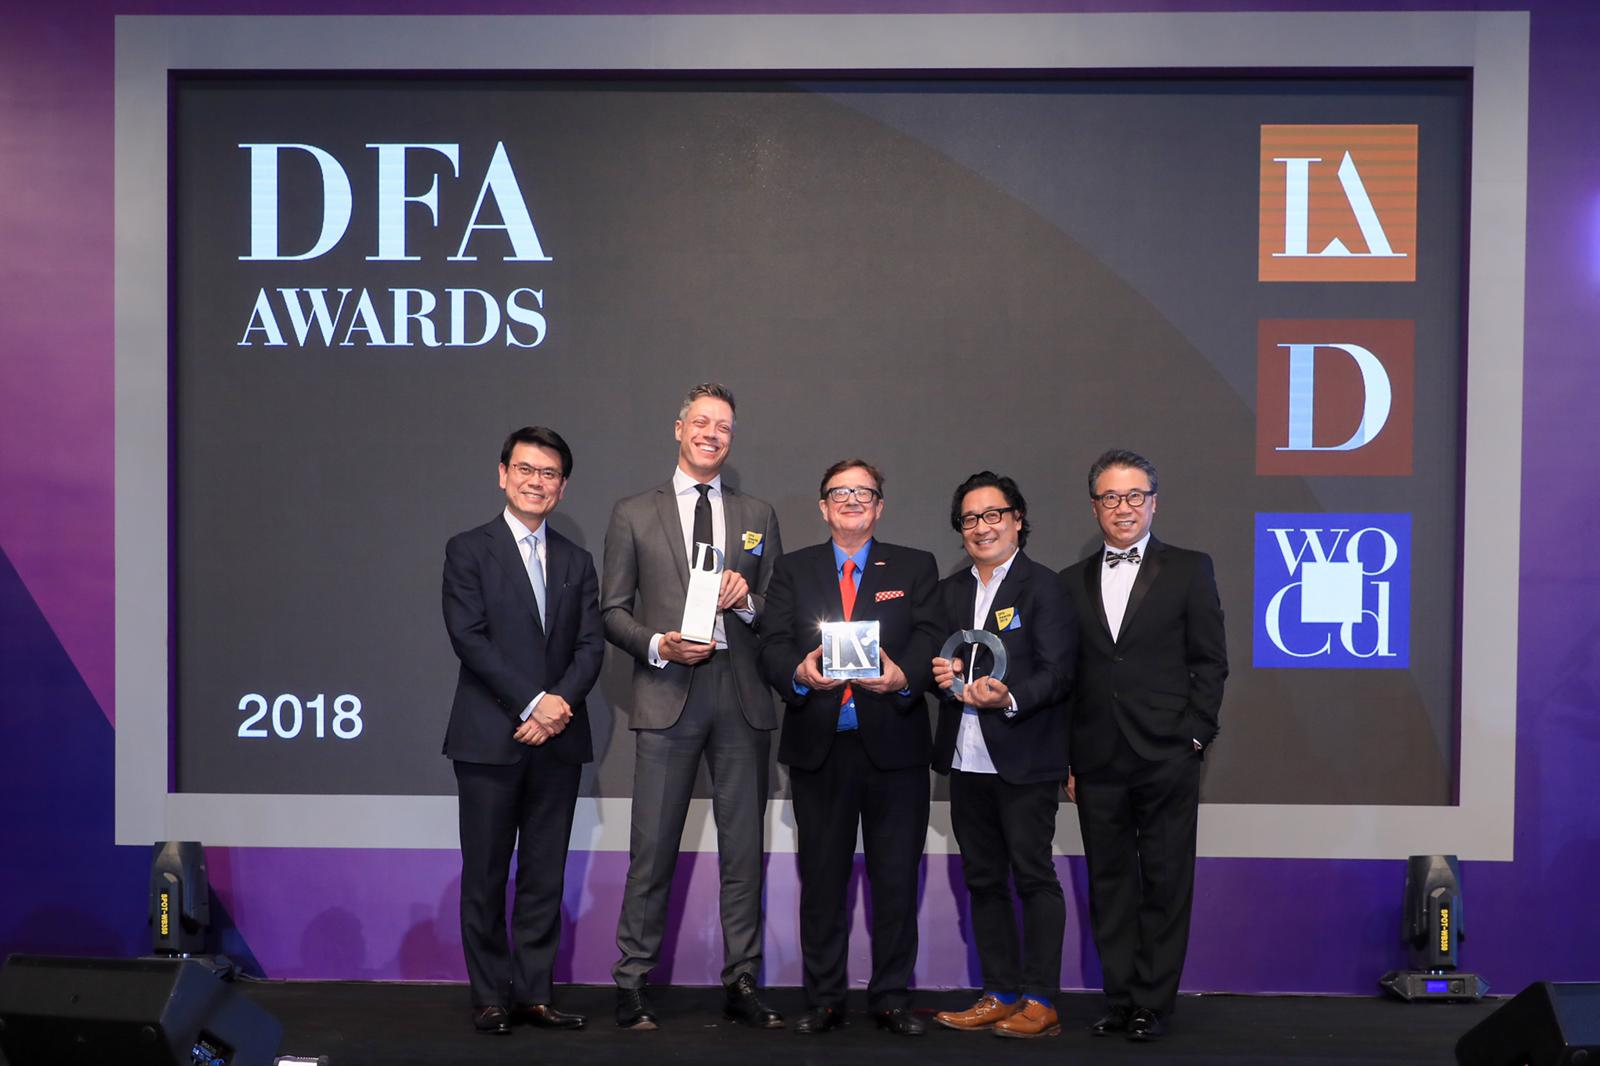 International Design Leaders Converge in Hong Kong for DFA Awards An award publication features each of the winning design excellence